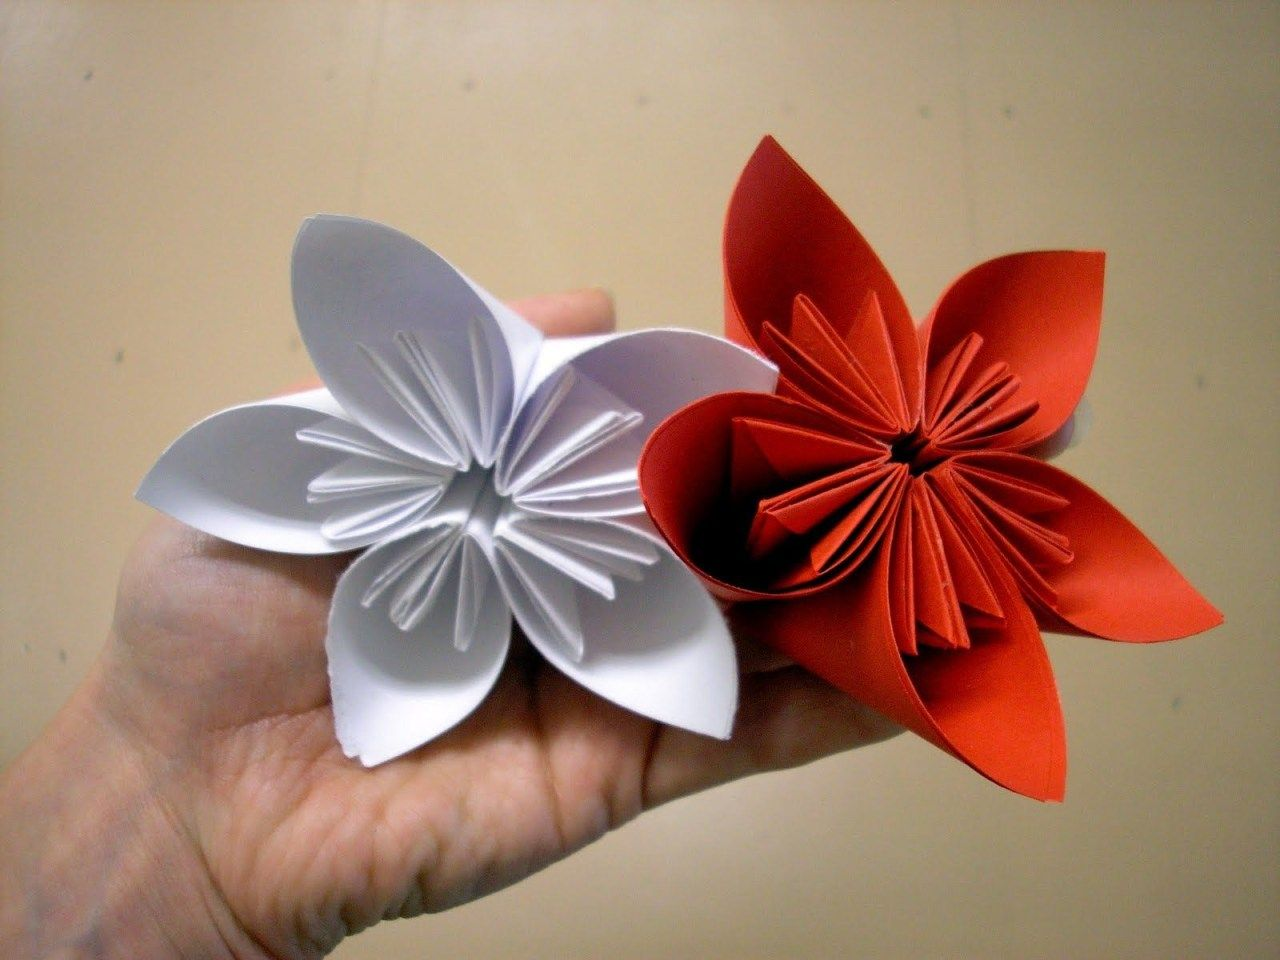 27 Wonderful Photo Of Origami For Beginners How To Make Origami